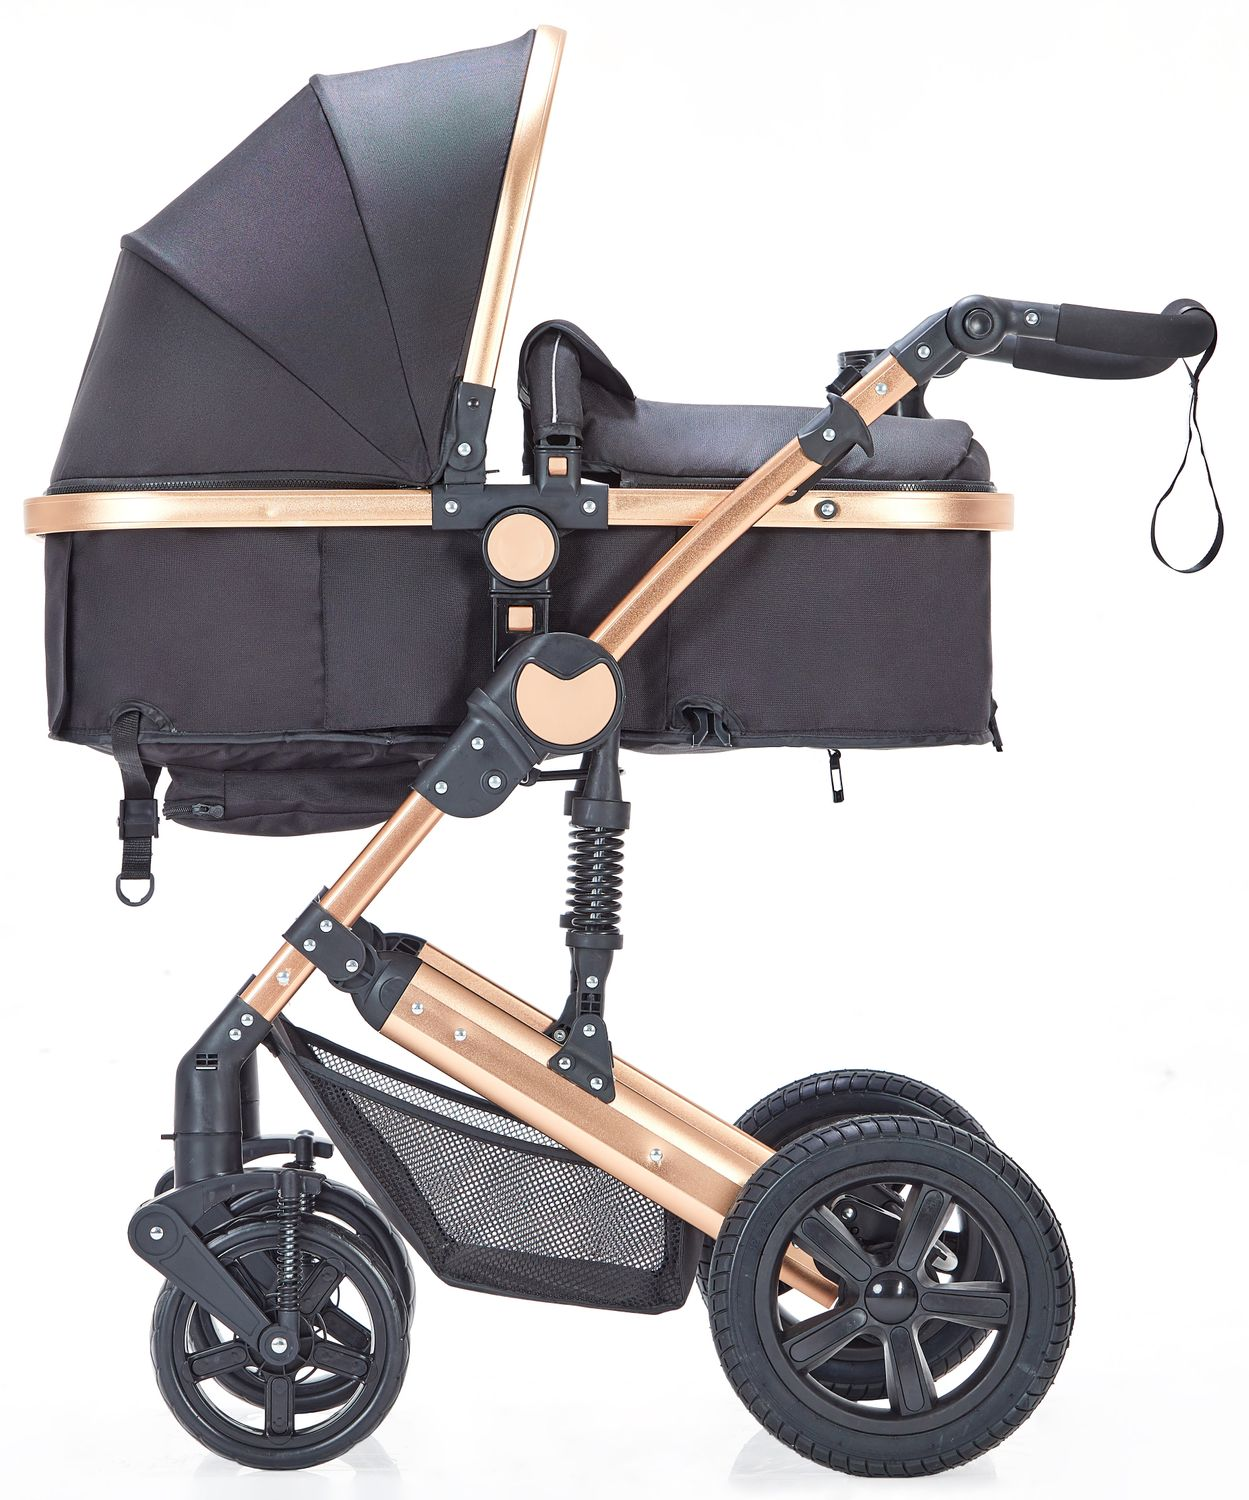 Kinderwagen MOTION 2 in 1 schwarz / gold